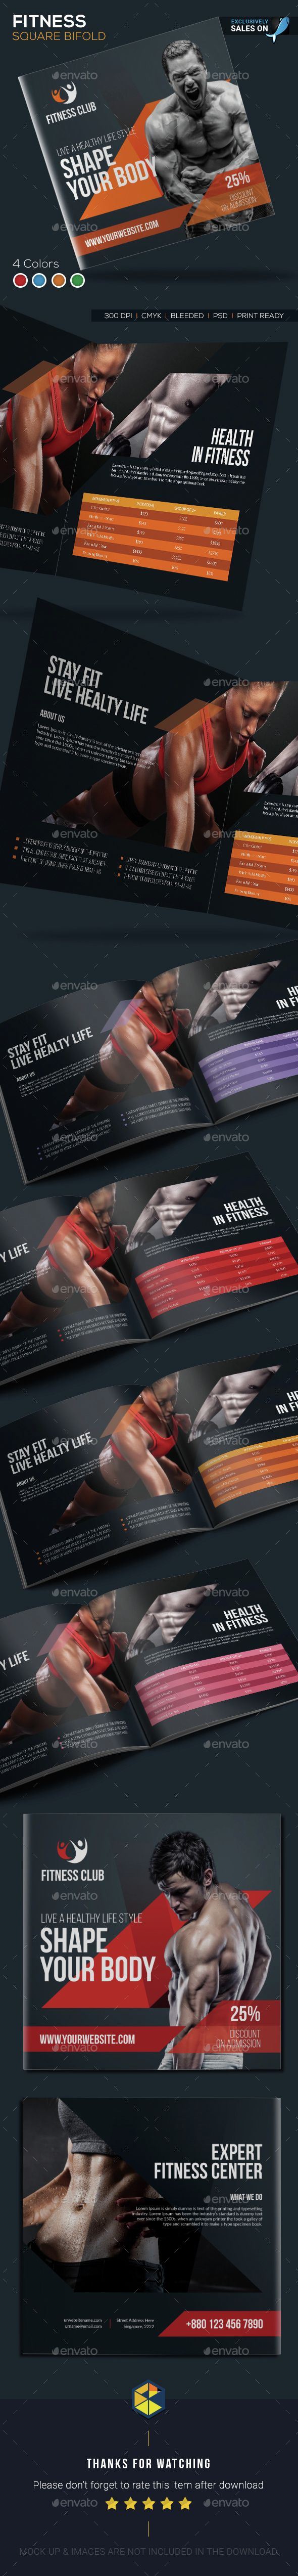 Fitness Square Bifold Brochure - Corporate #Brochures | Download http://graphicriver.net/item/fitness-square-bifold-brochure/15314132?ref=sinzo